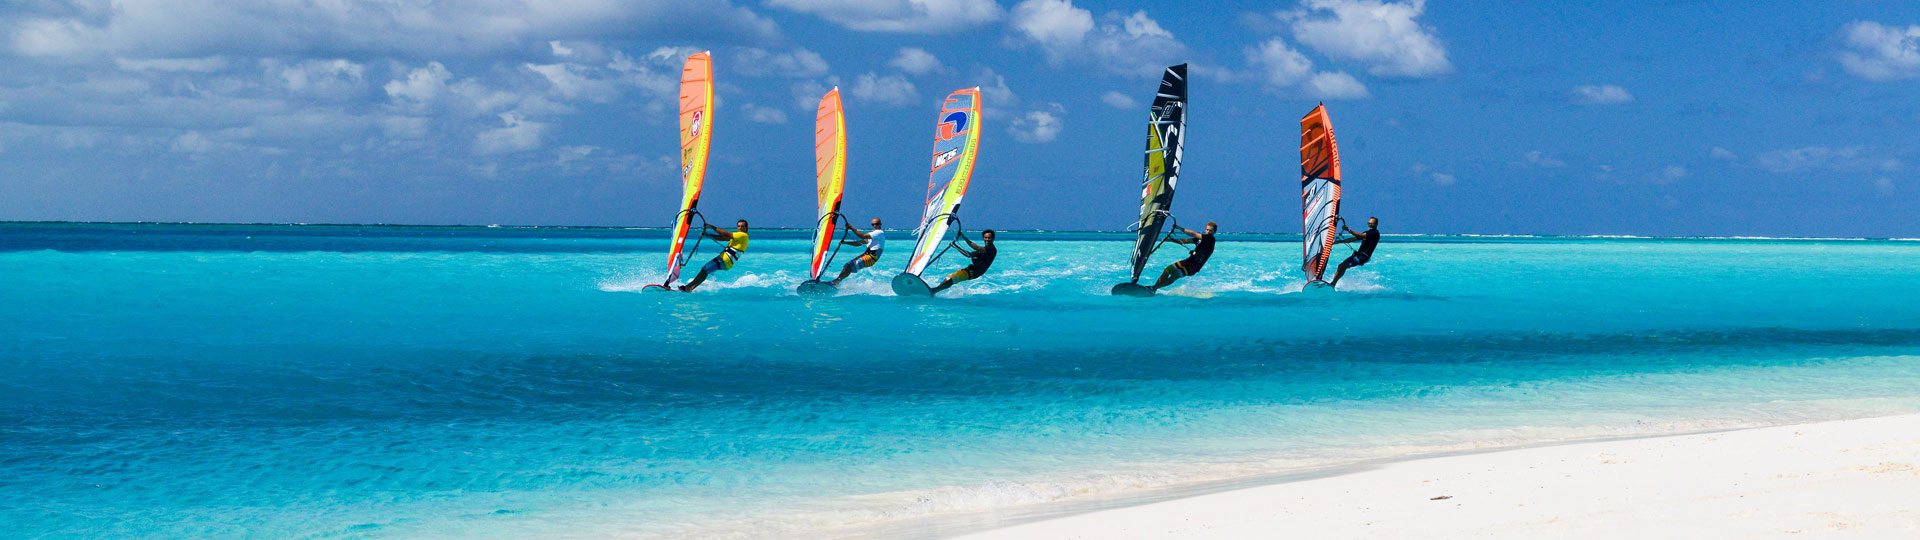 Water sports in New Caledonia